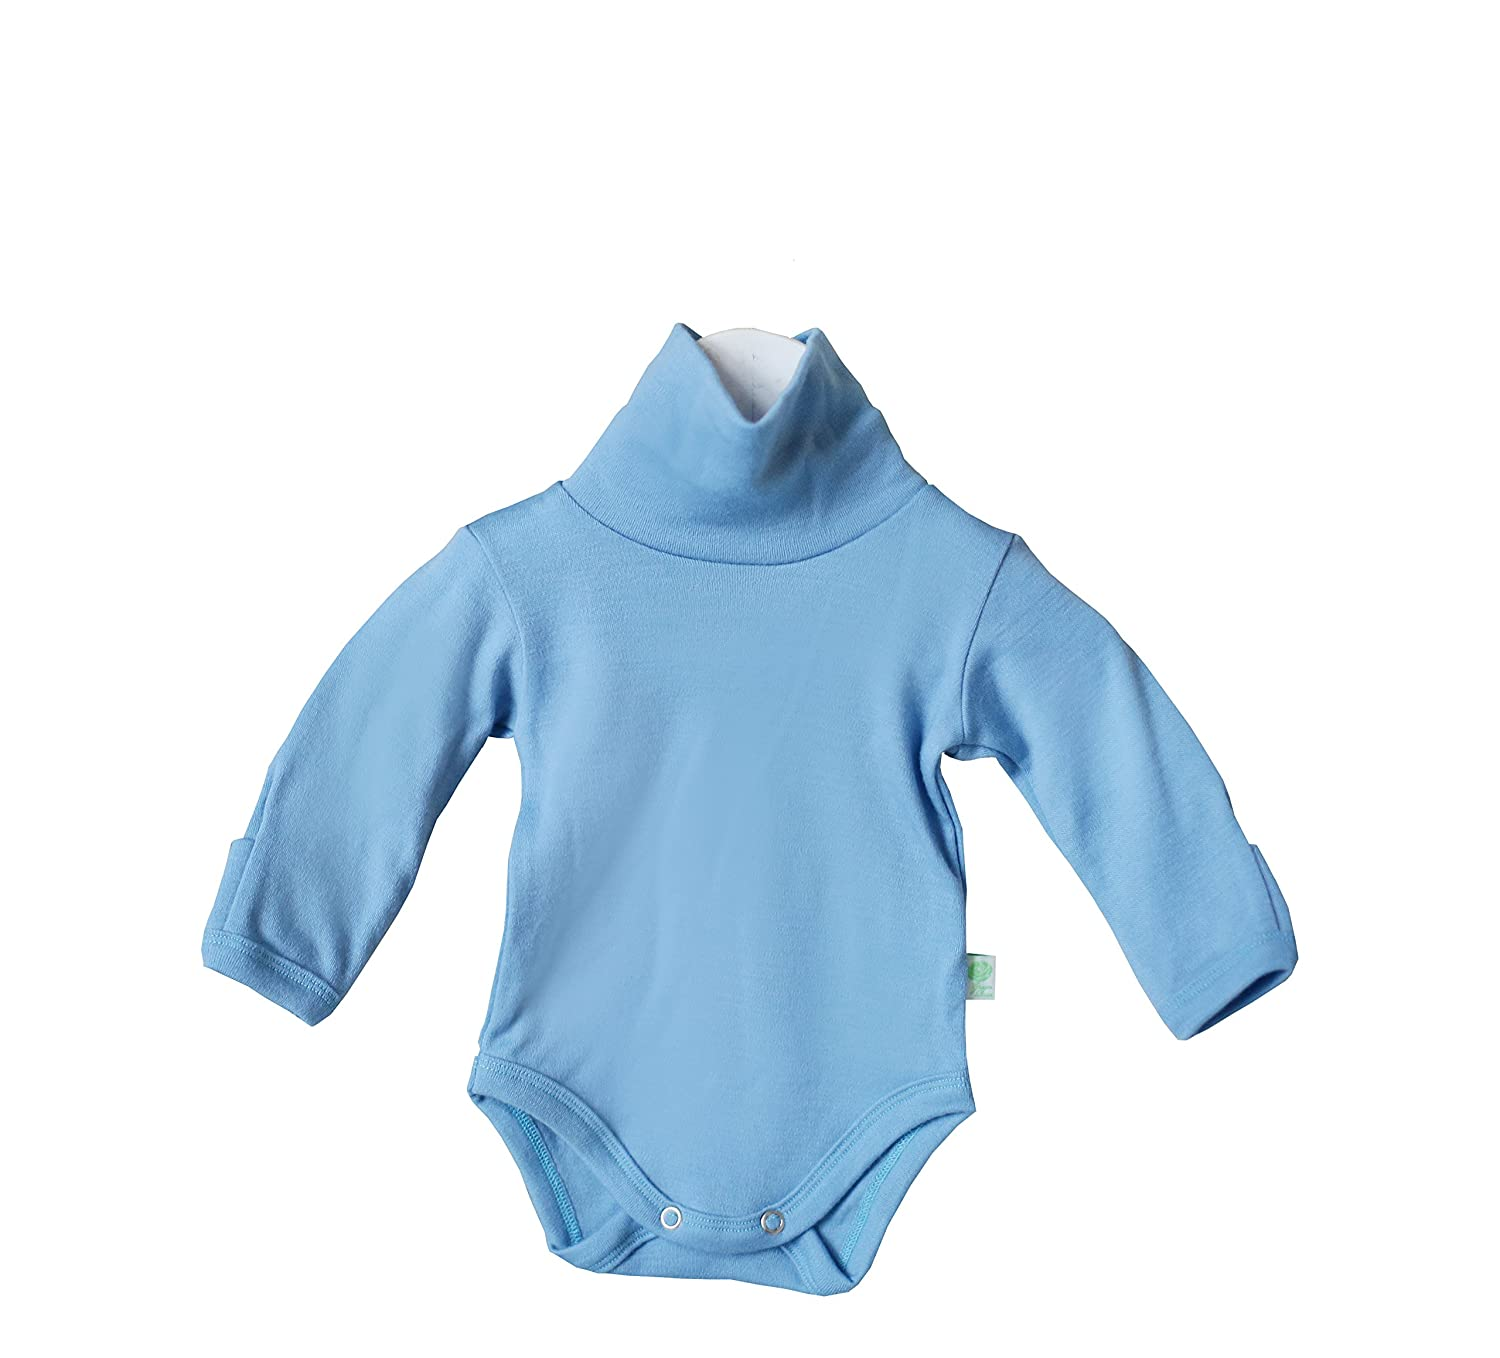 GREEN ROSE Baby Roll Neck Bodysuit Long Sleeves Onesie Turtle Neck one-Piece Clothes for Baby Girl Boy 0-24 Months 100% Merino Wool